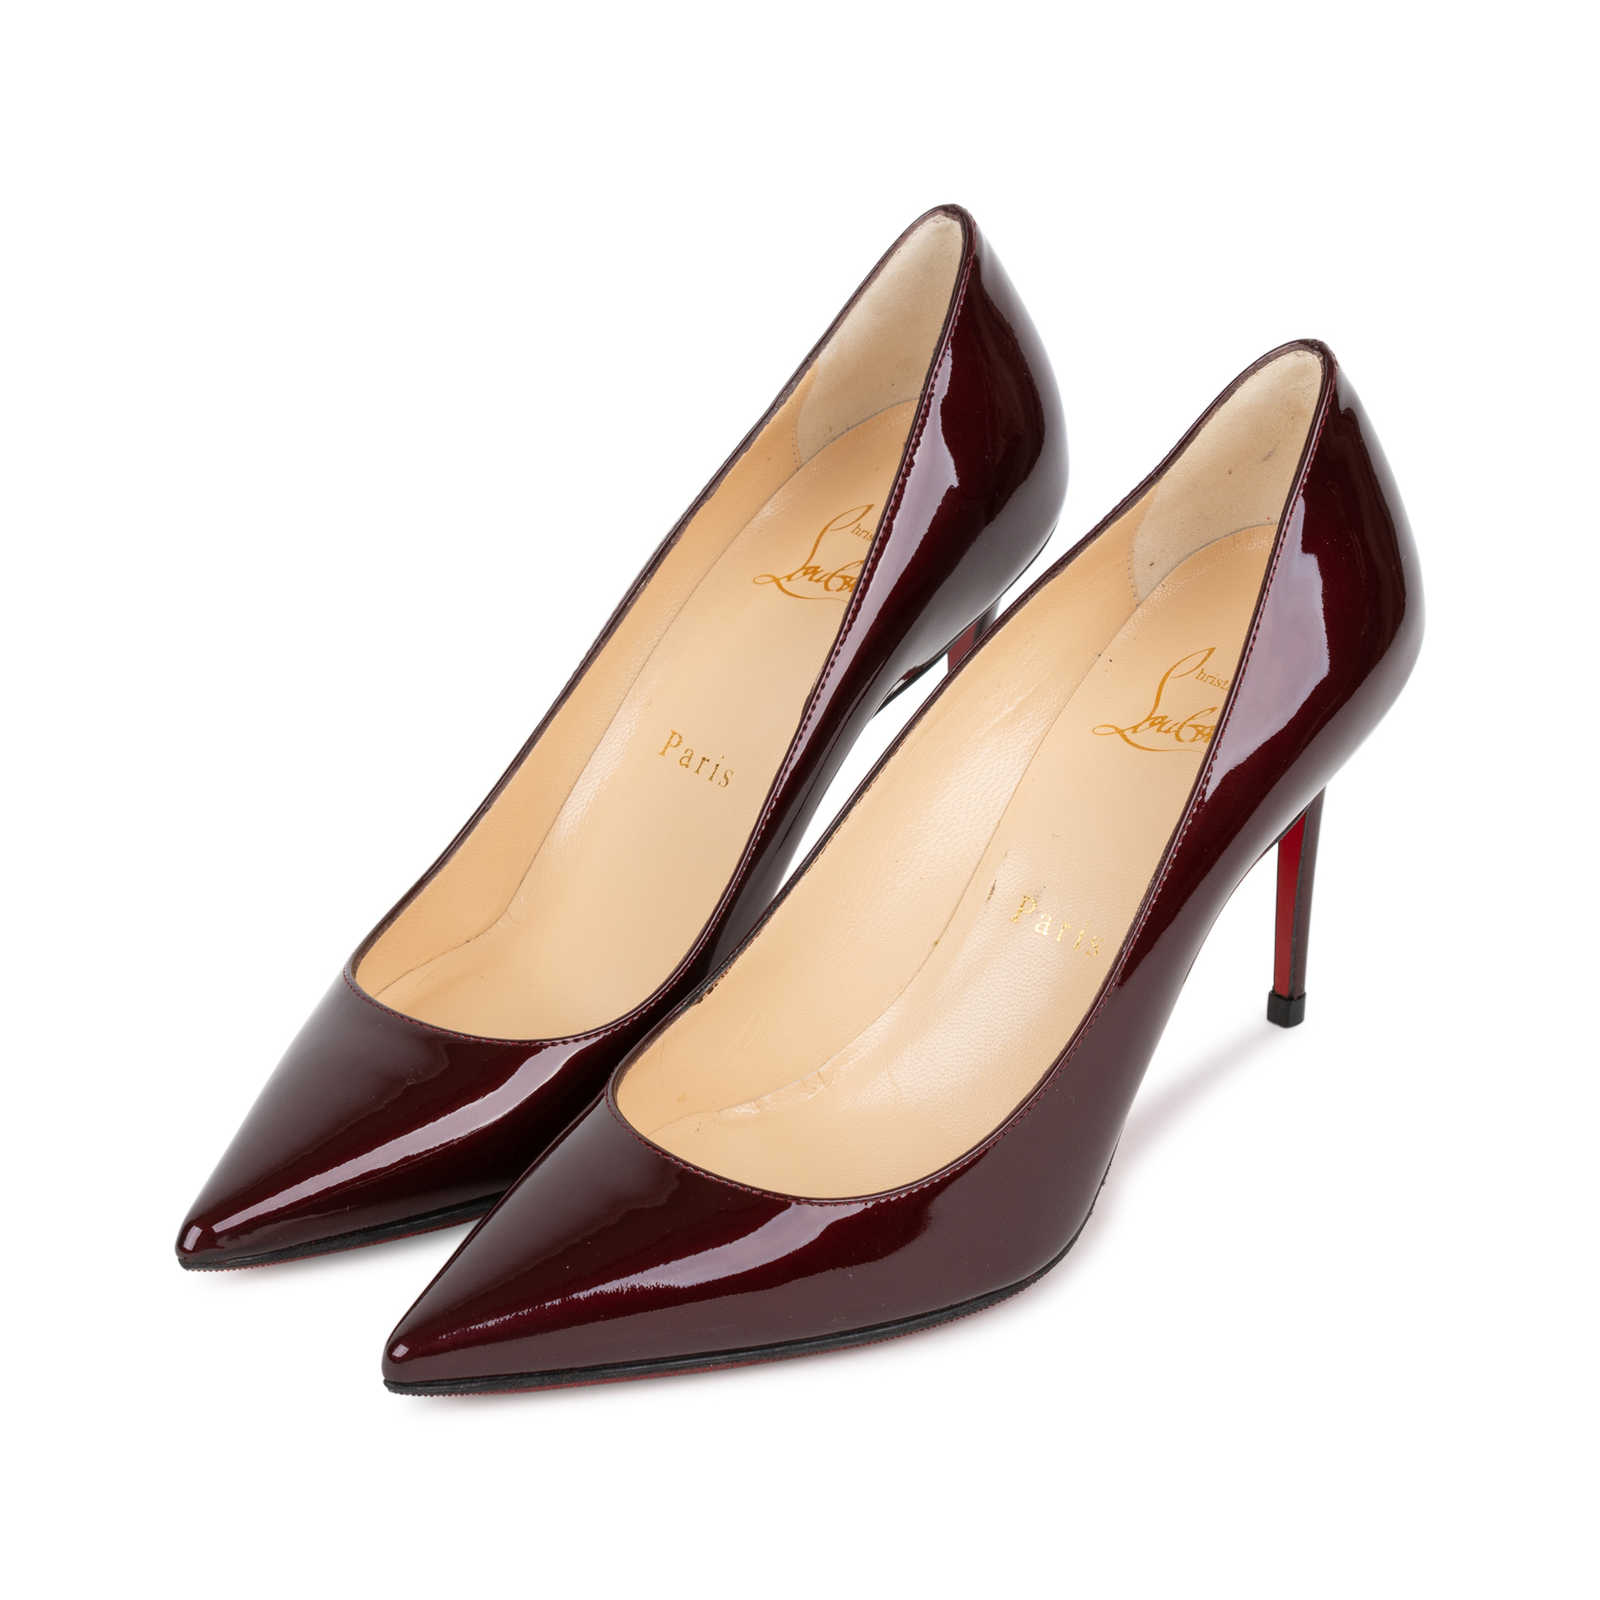 483b8389e981 ... Authentic Second Hand Christian Louboutin Decolette 554 Pumps  (PSS-558-00015) ...